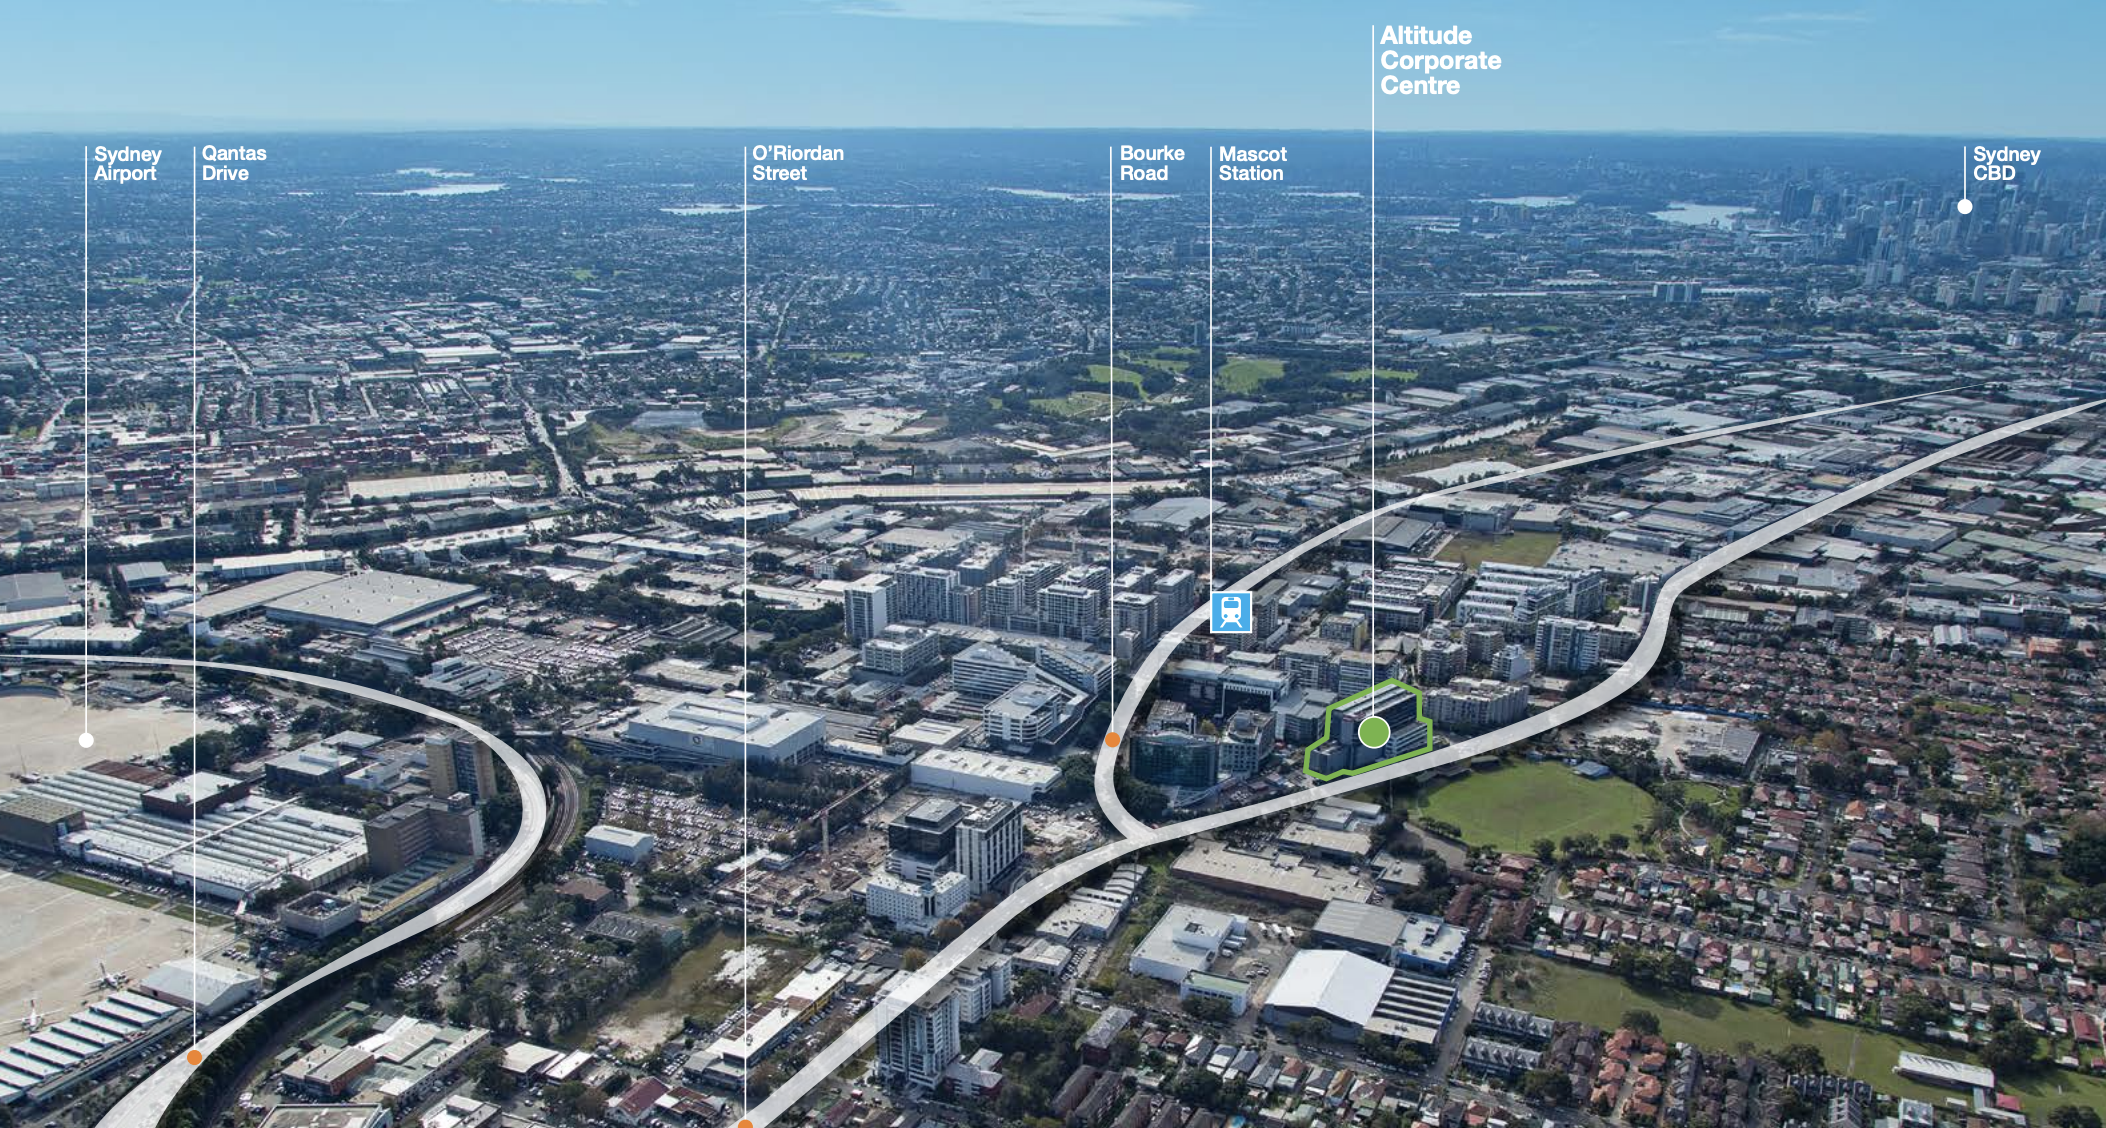 ▲ Cromwell has snapped up Goodman Group's Altitude Corporate Centre for $113.28 million.